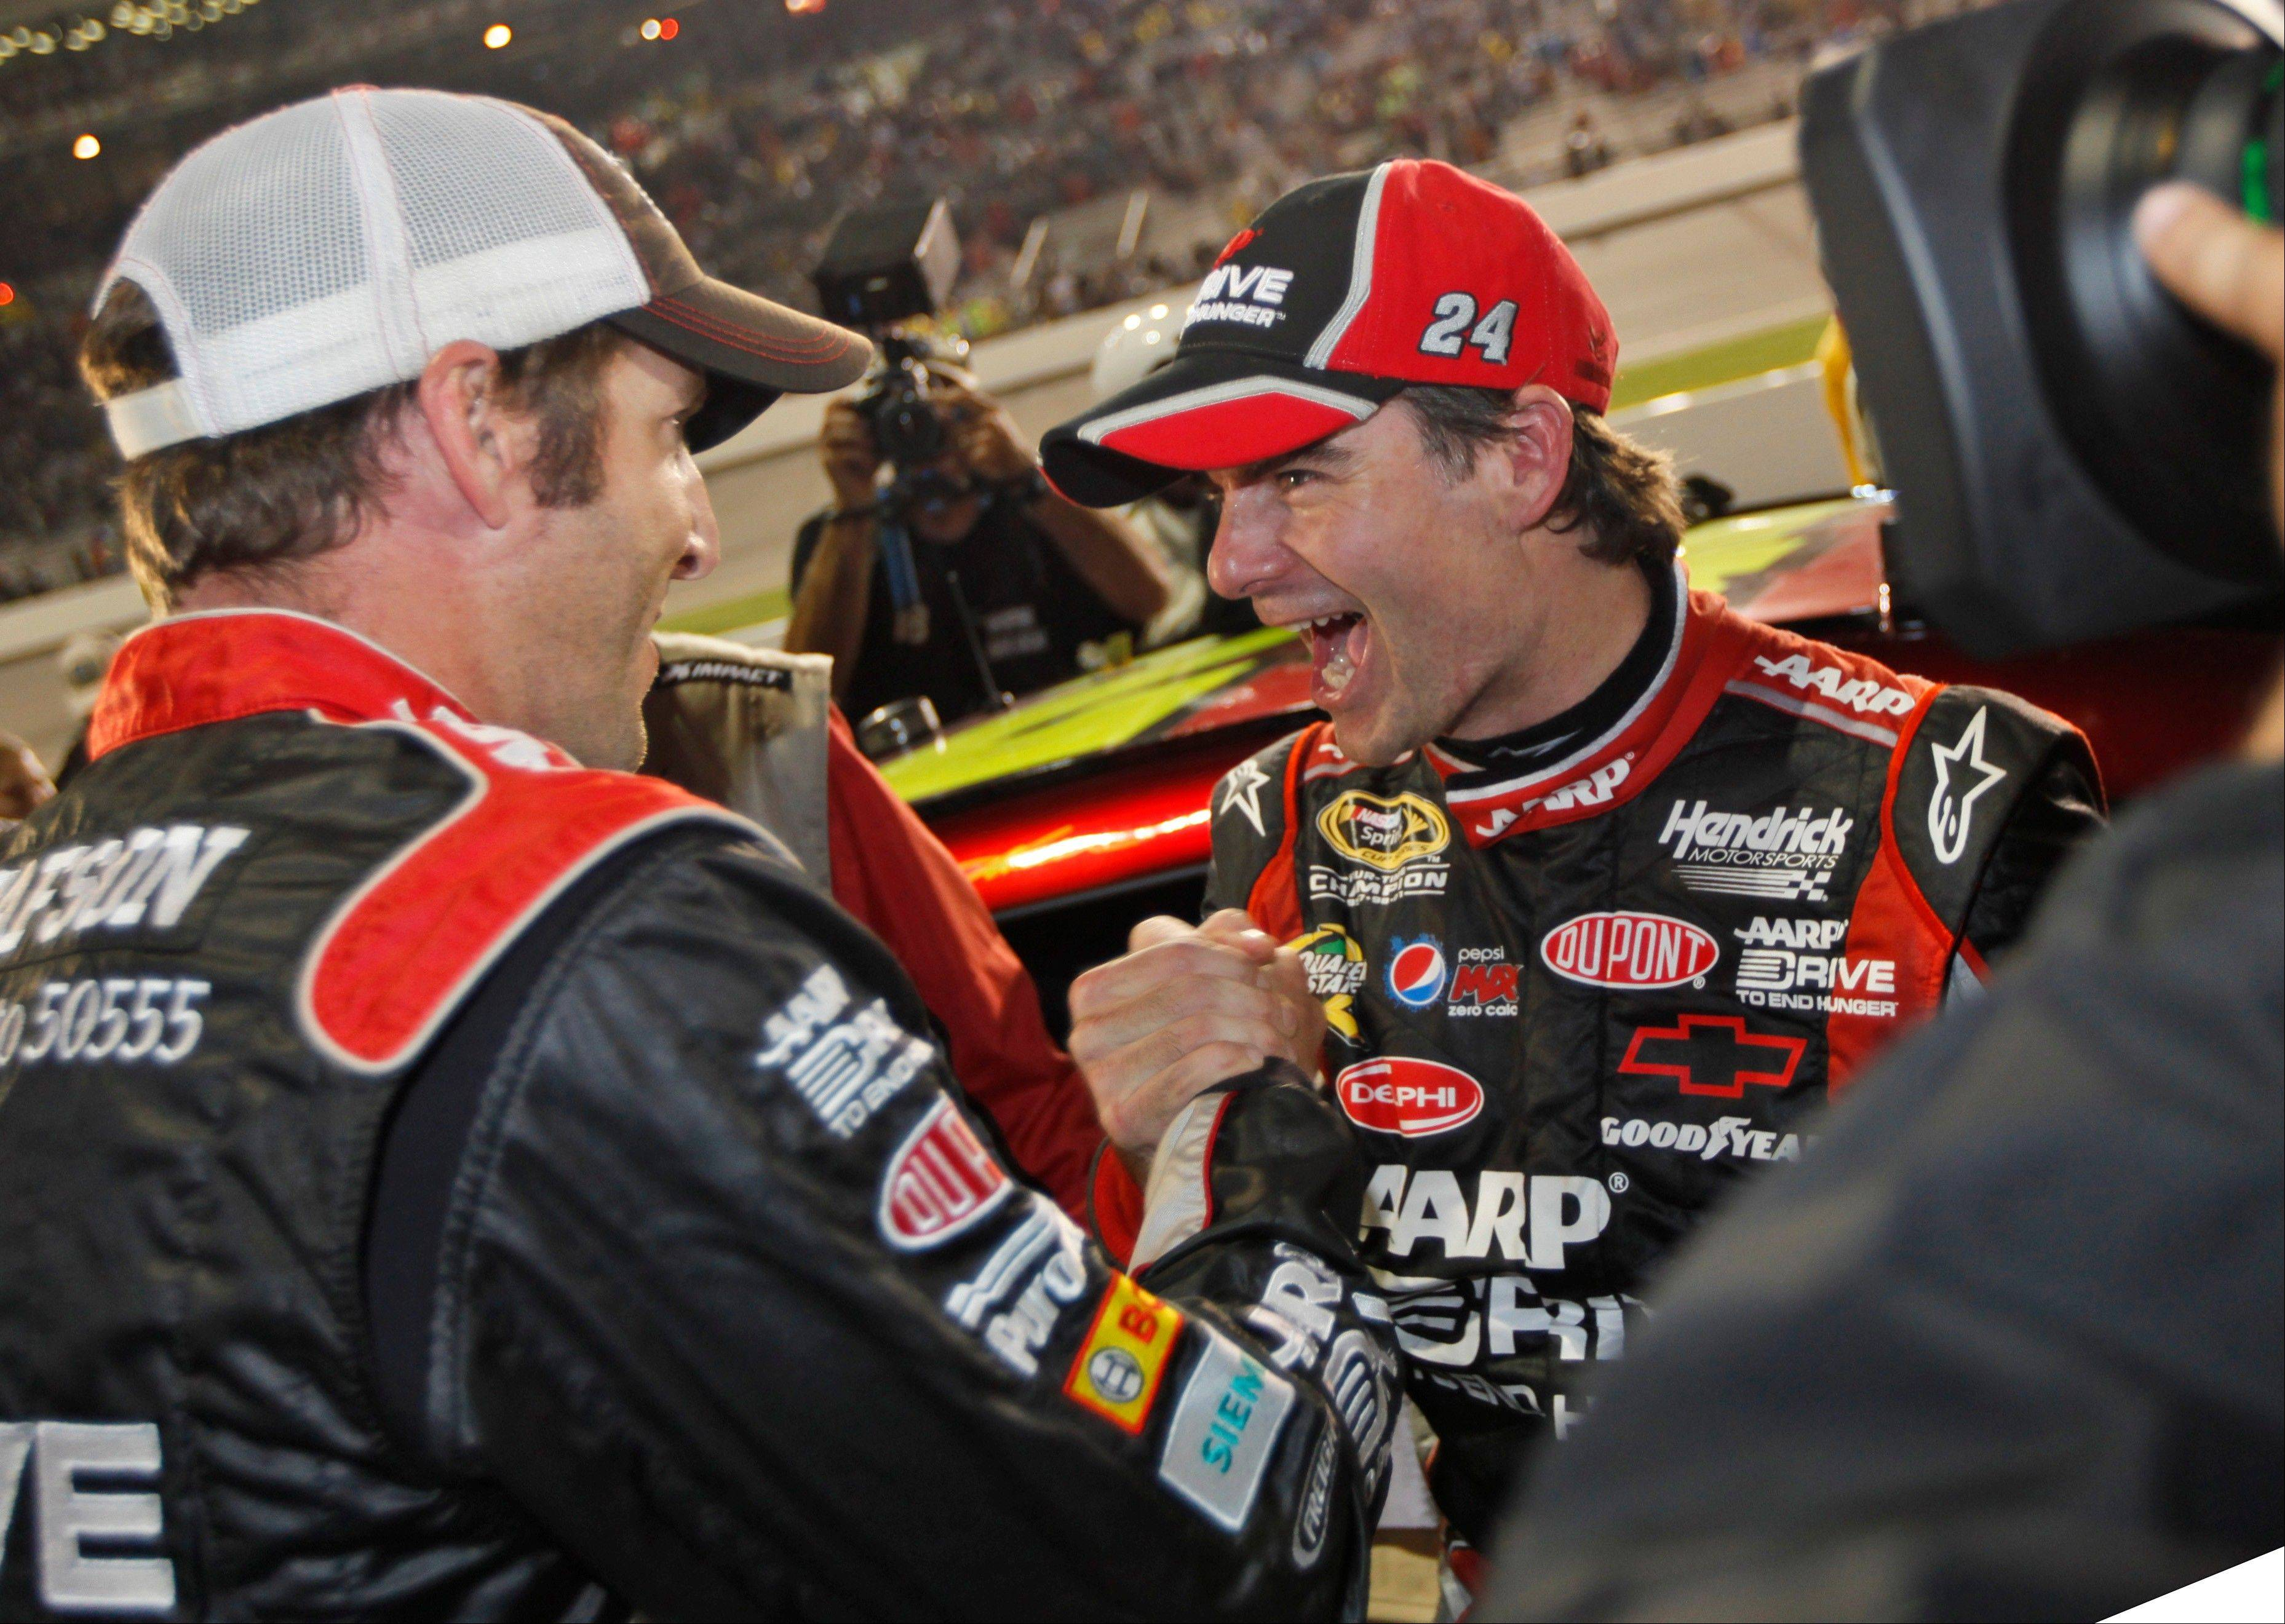 Jeff Gordon celebrates making the chase with crew chief, Alan Gustafson, left, on pit row after the NASCAR Sprint Cup Series auto race at the Richmond International Raceway in Richmond, Va., Sunday, Sept. 9, 2012.